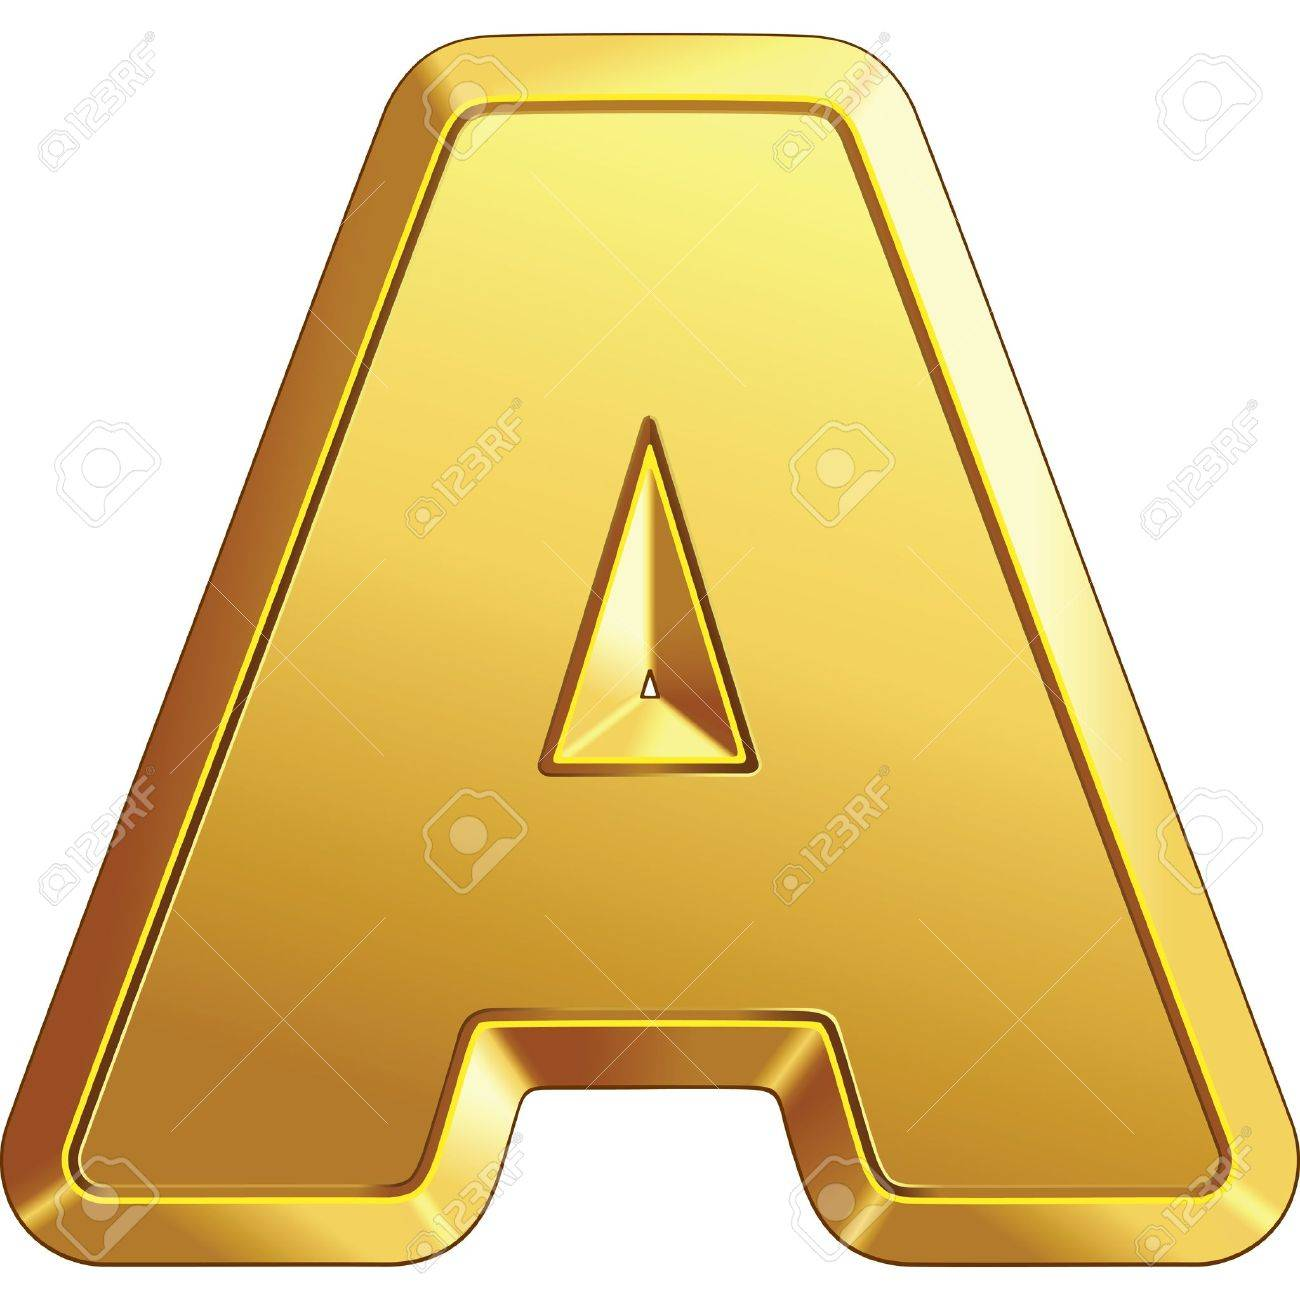 gold bar letter A isolated on white background Stock Vector - 11011869